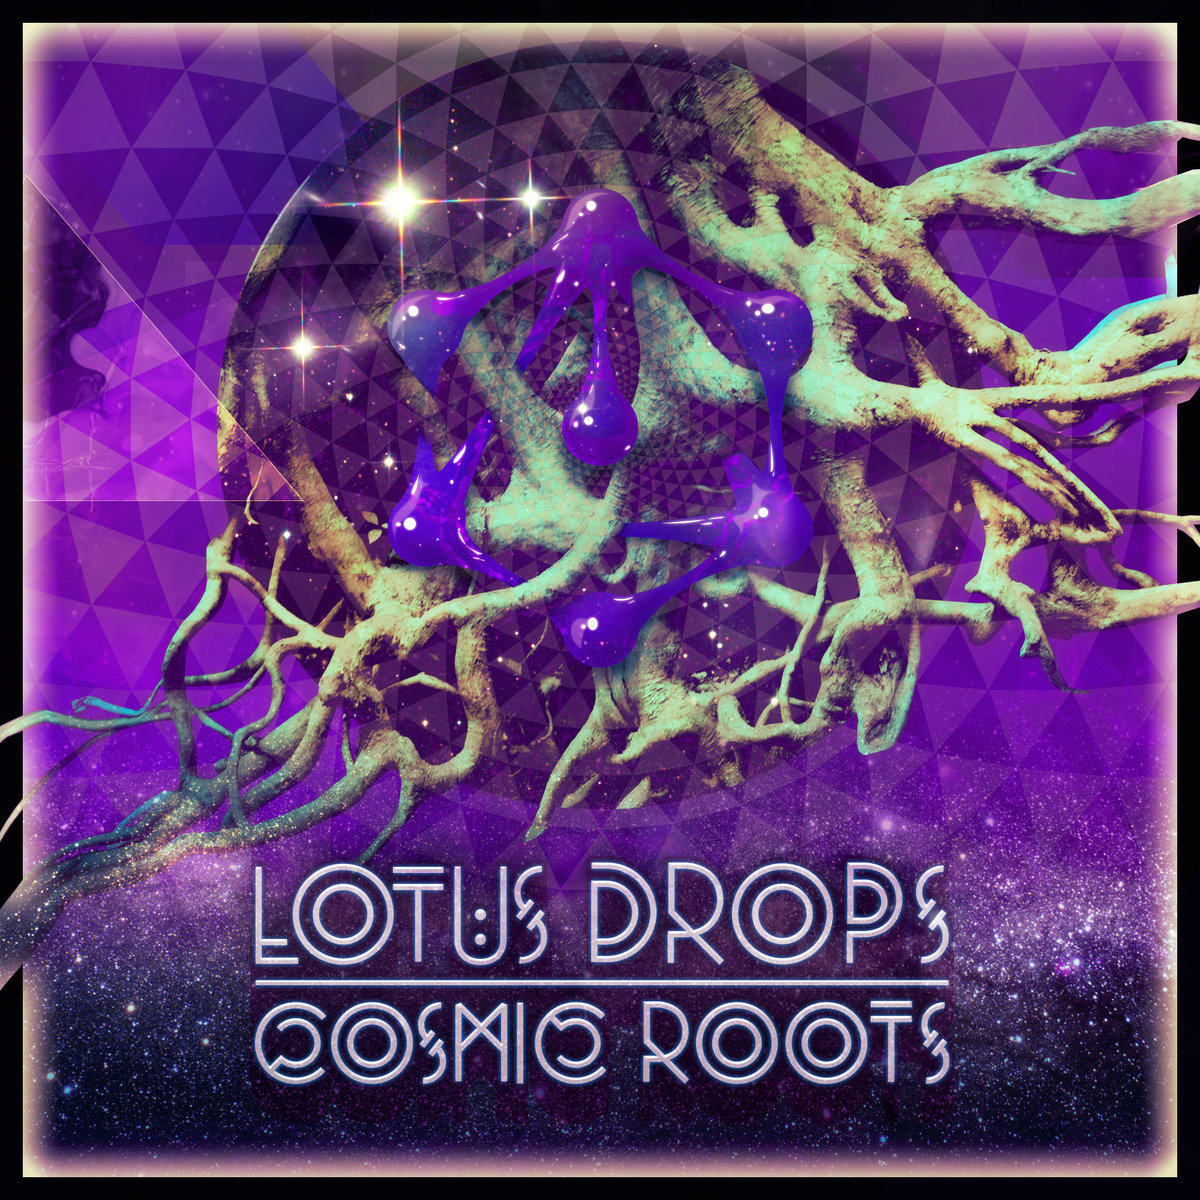 Lotus Drops - Egyptian Summer @ 'Cosmic Roots' album (electronic, dubstep)